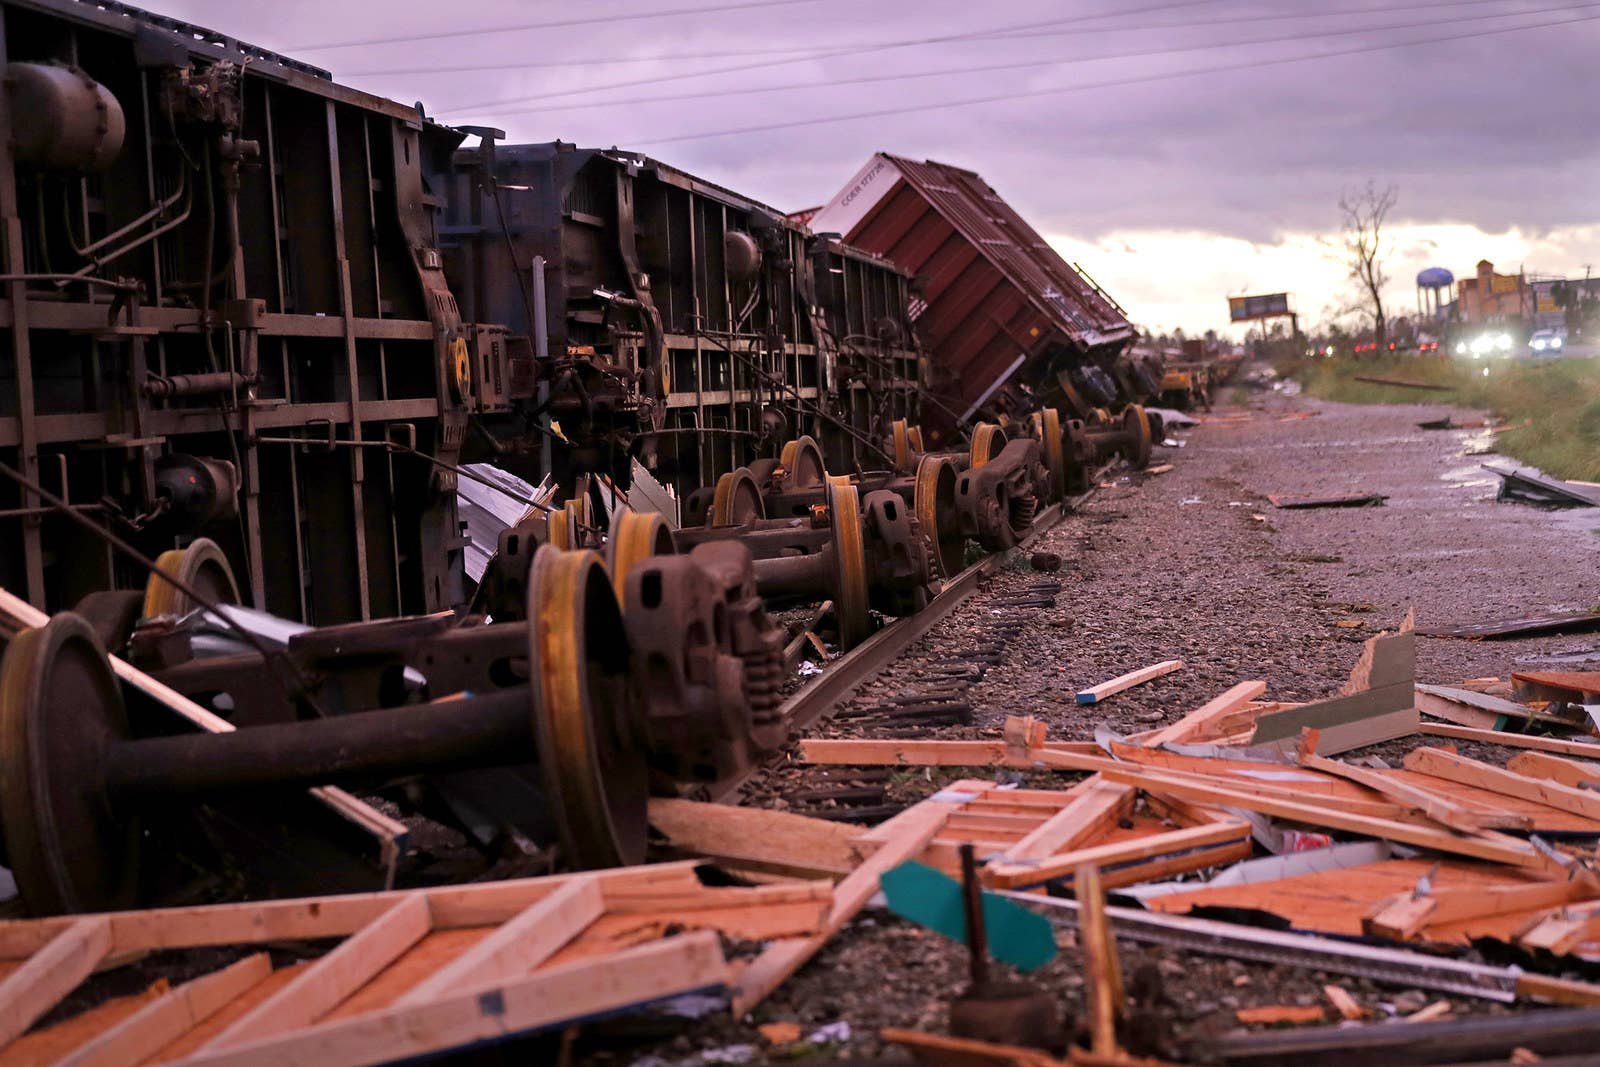 Derailed box cars are seen in the aftermath of Hurricane Michael in Panama City, Florida.